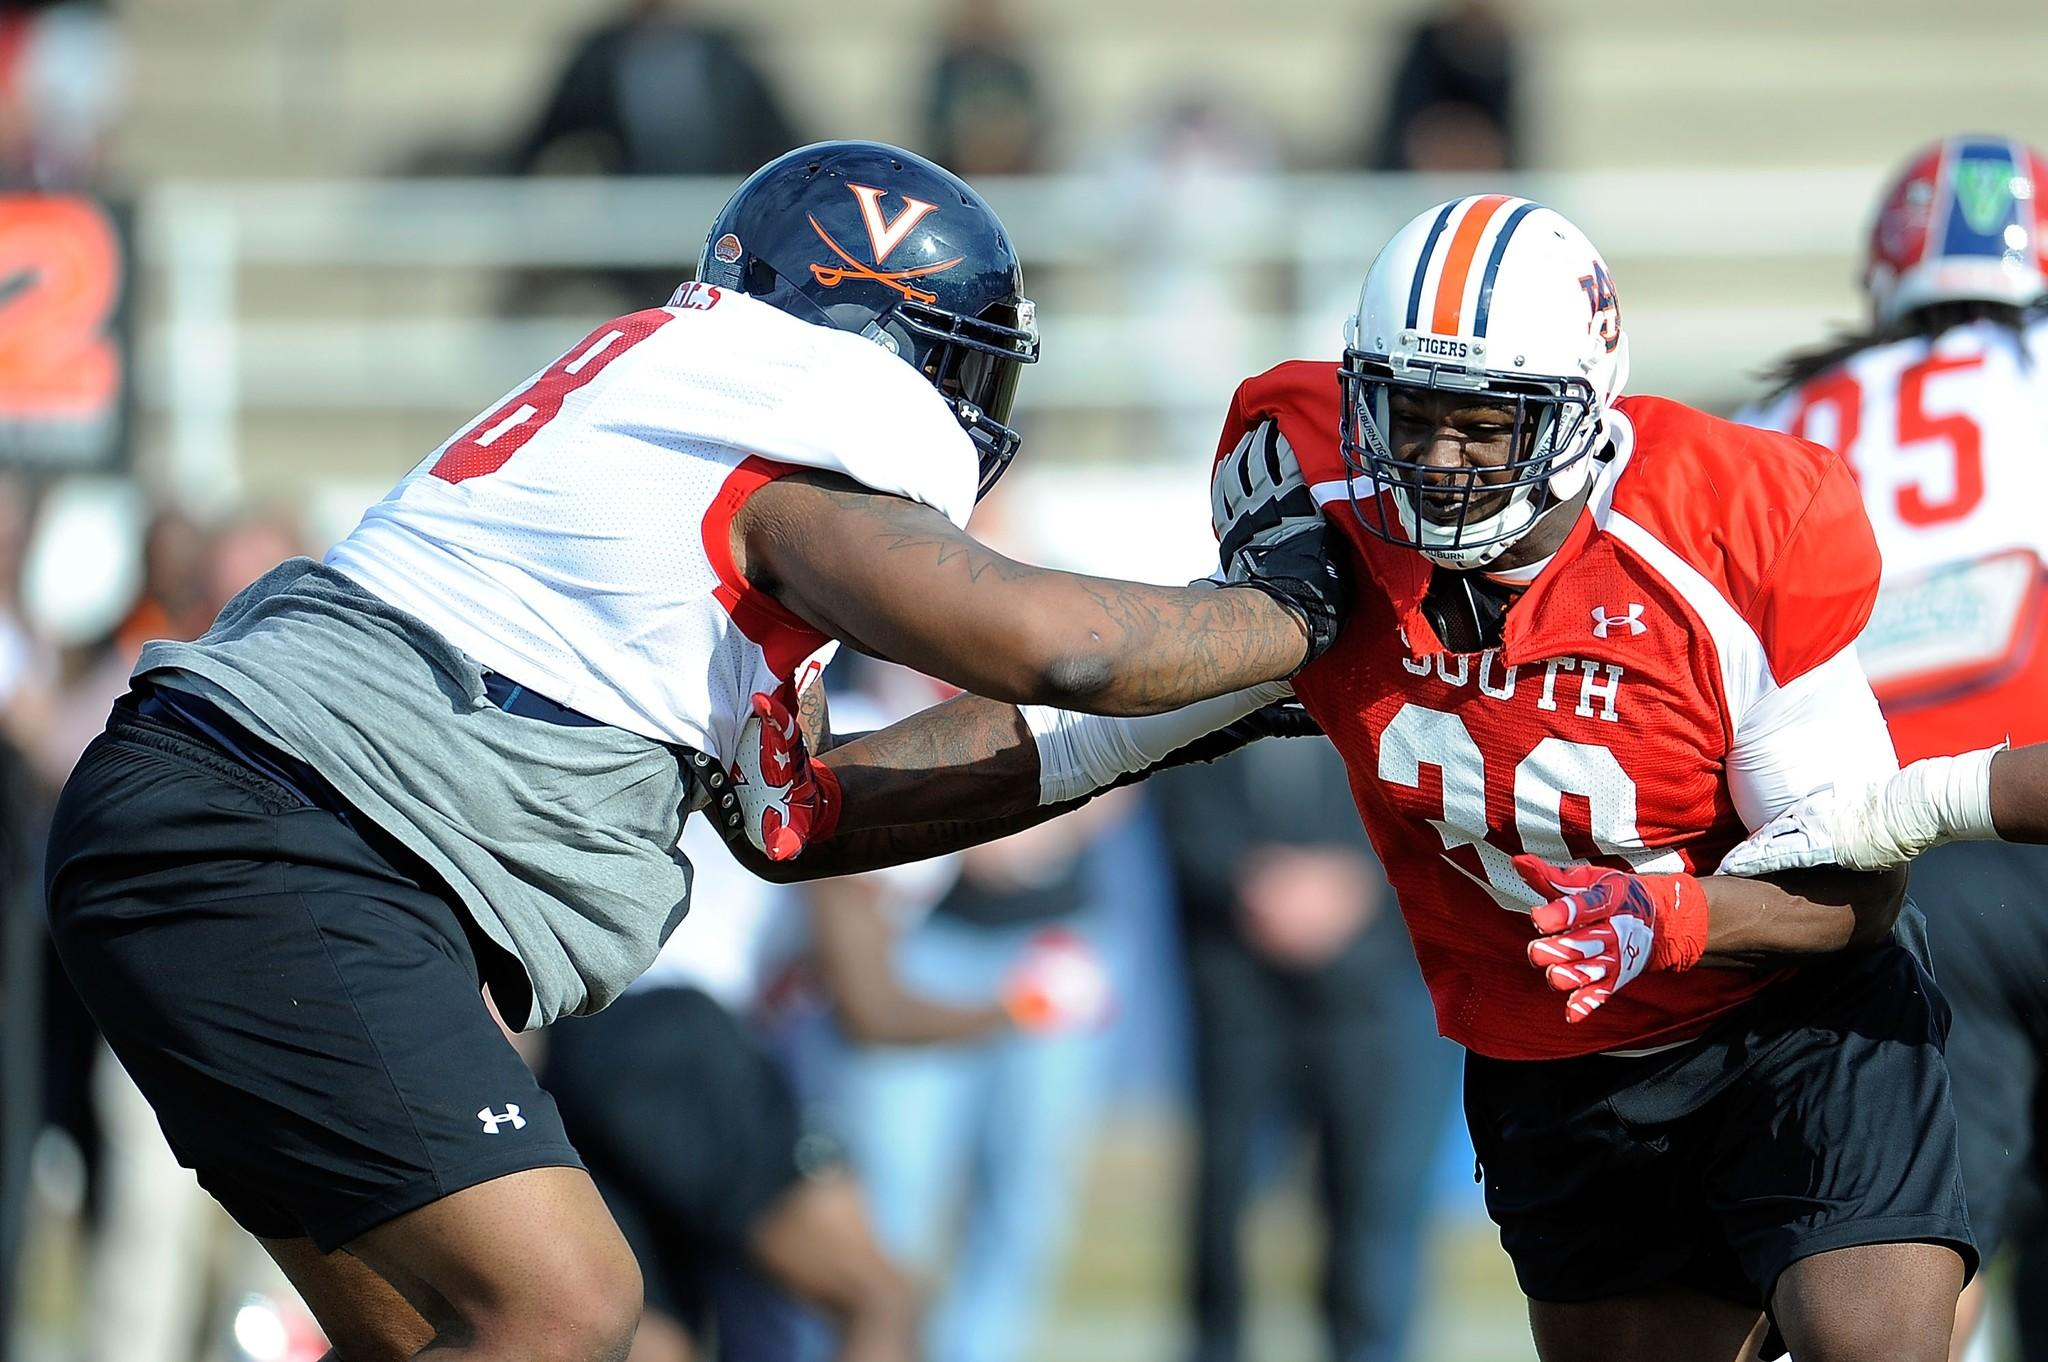 Dee Ford #30 of the South team works against Morgan Moses #78 during a Senior Bowl practice session at Fairhope Stadium on January 20, 2014 in Fairhope, Alabama.